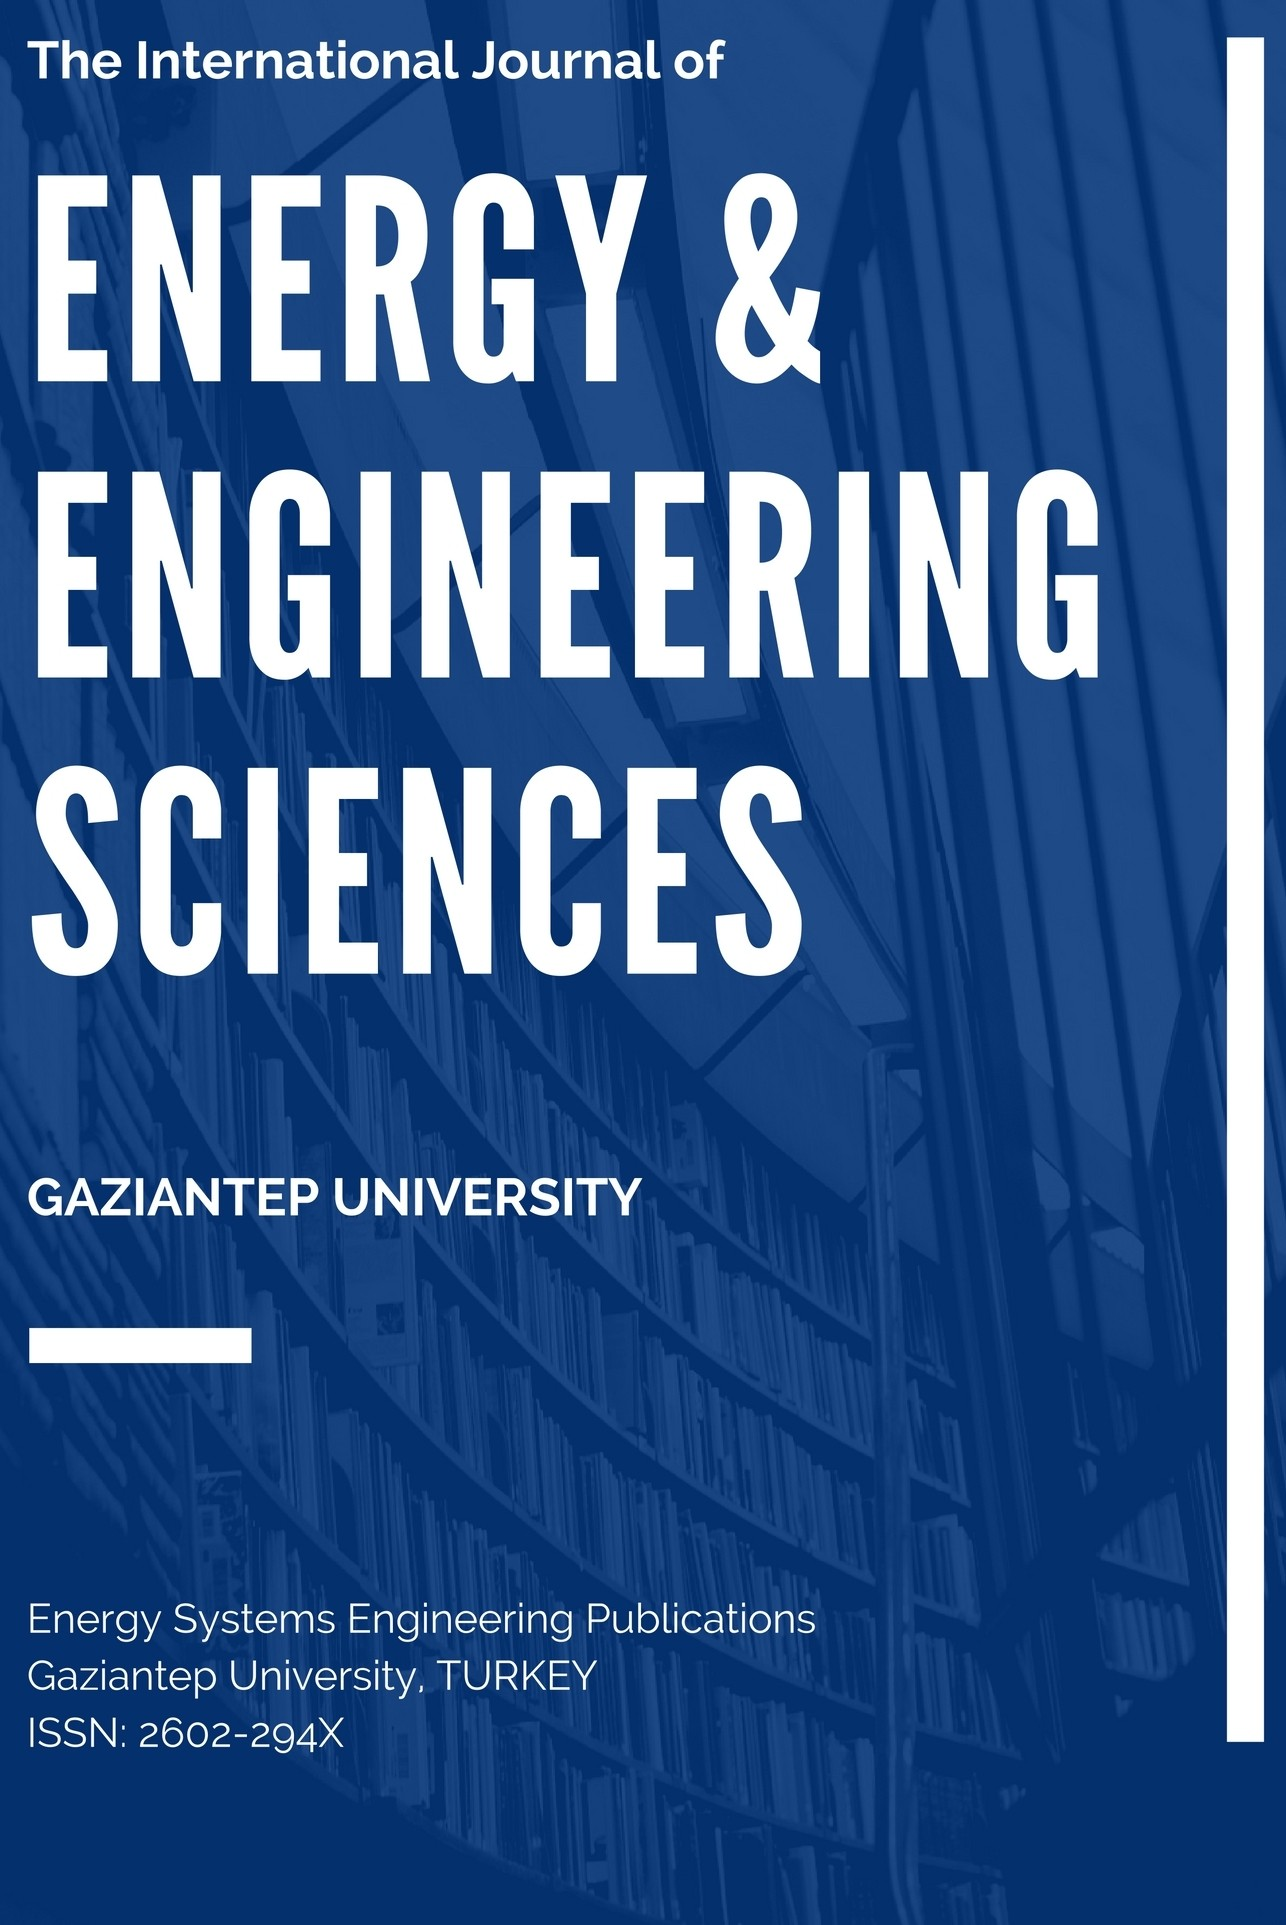 The International Journal of Energy and Engineering Sciences